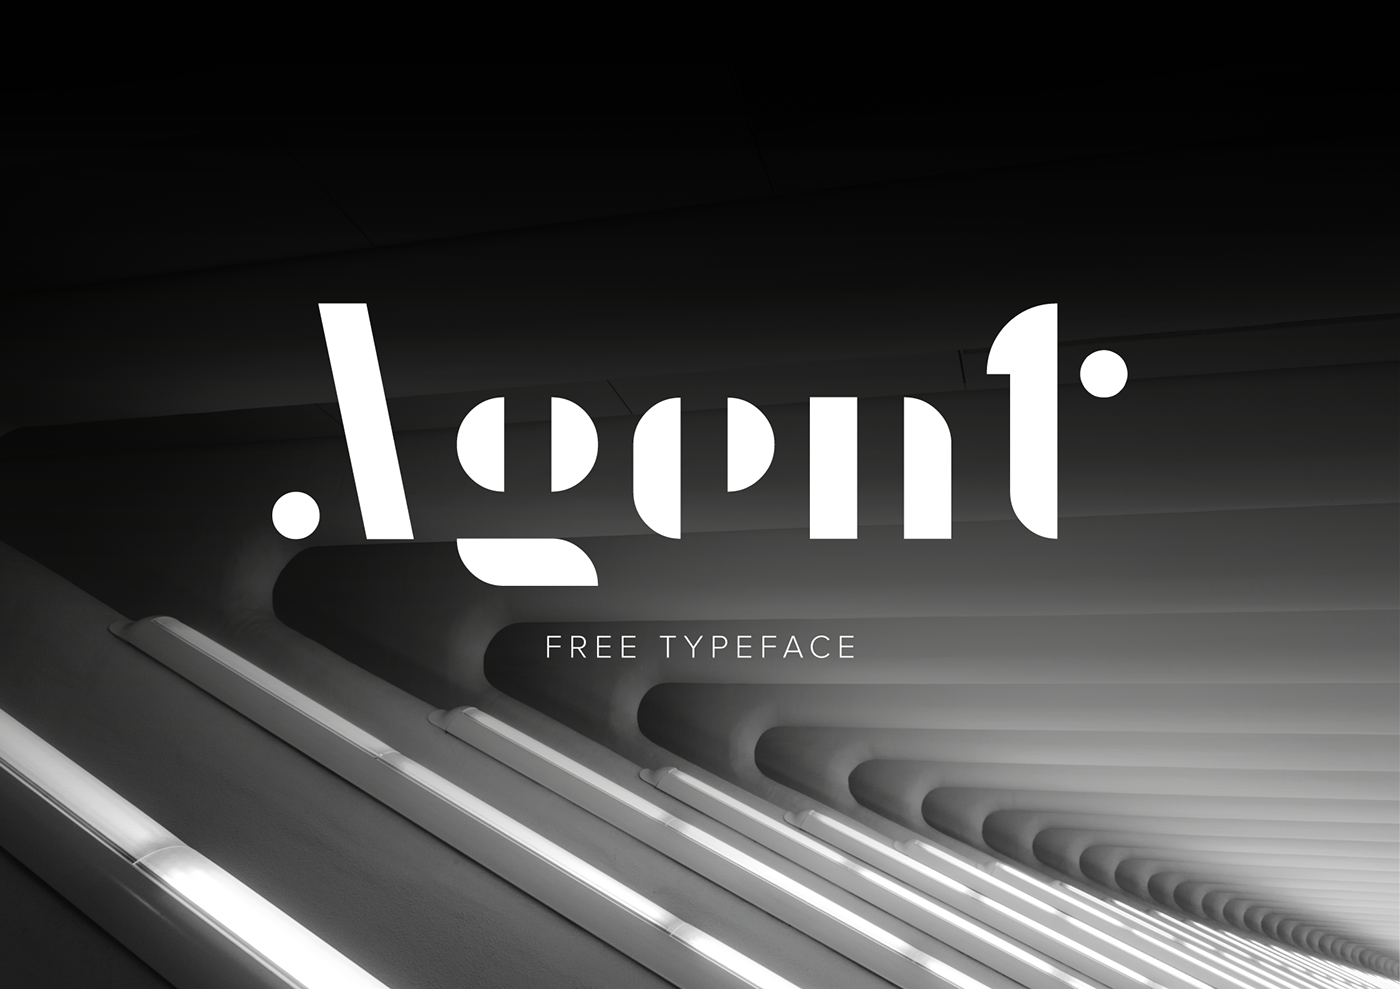 Free Download: Agent Font